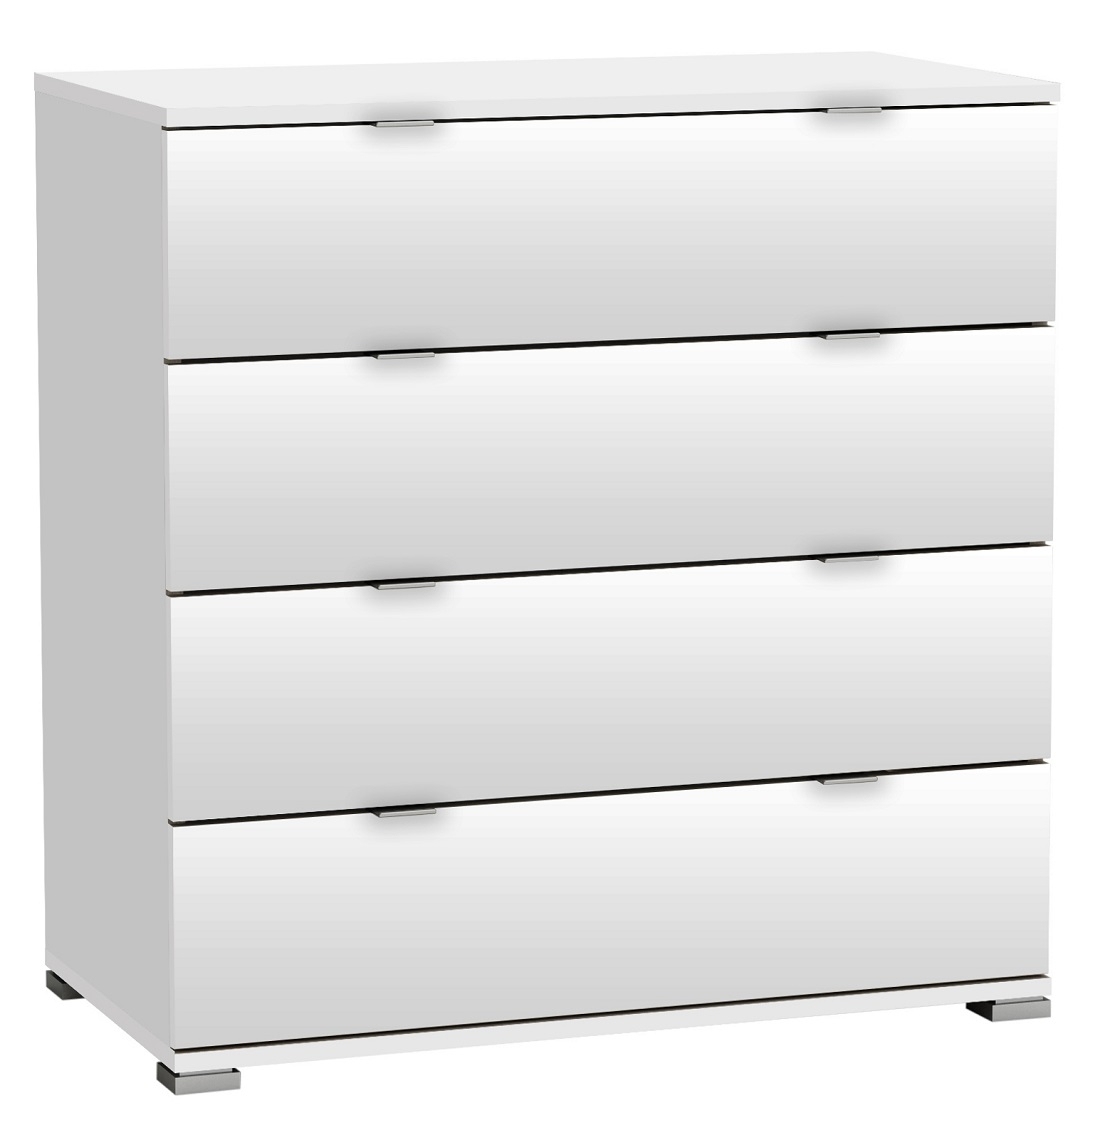 Commode Perfect 82 cm hoog - wit